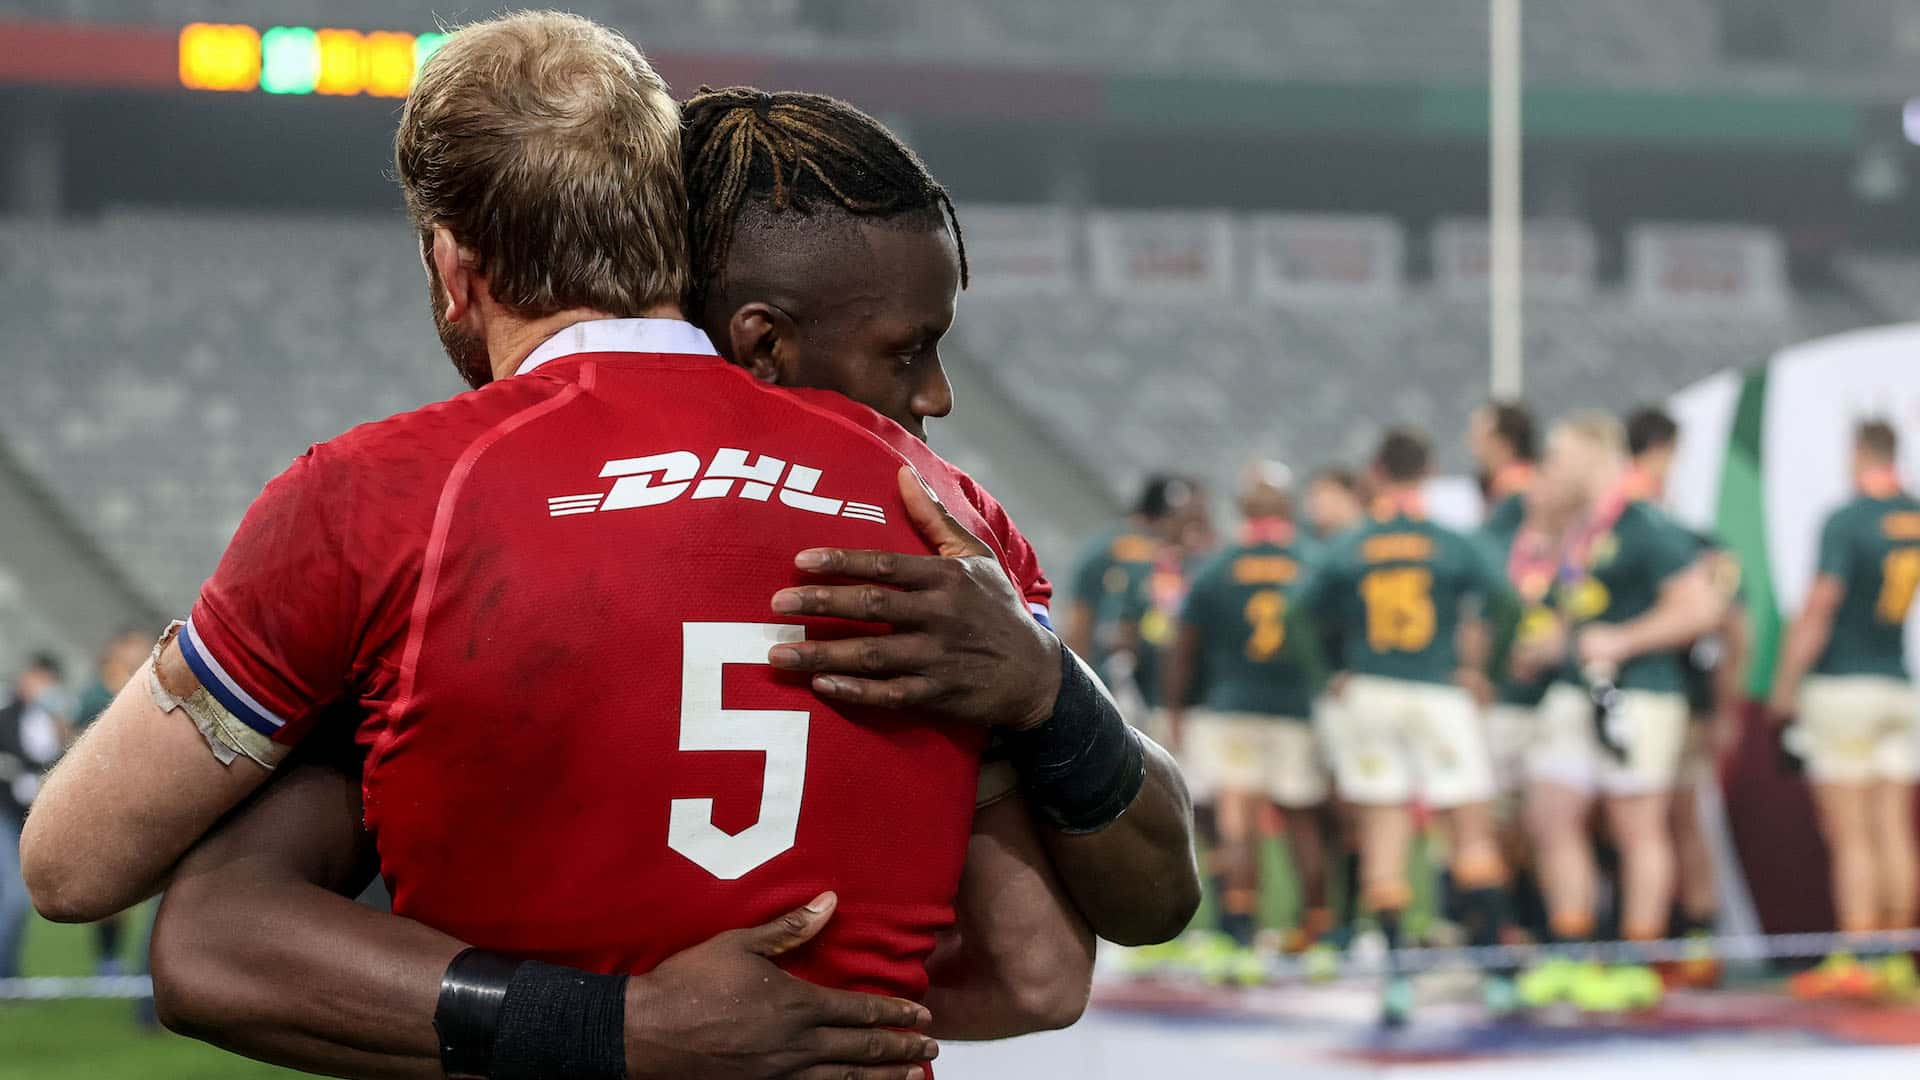 Alun Wyn Jones and Maro Itoje after the game